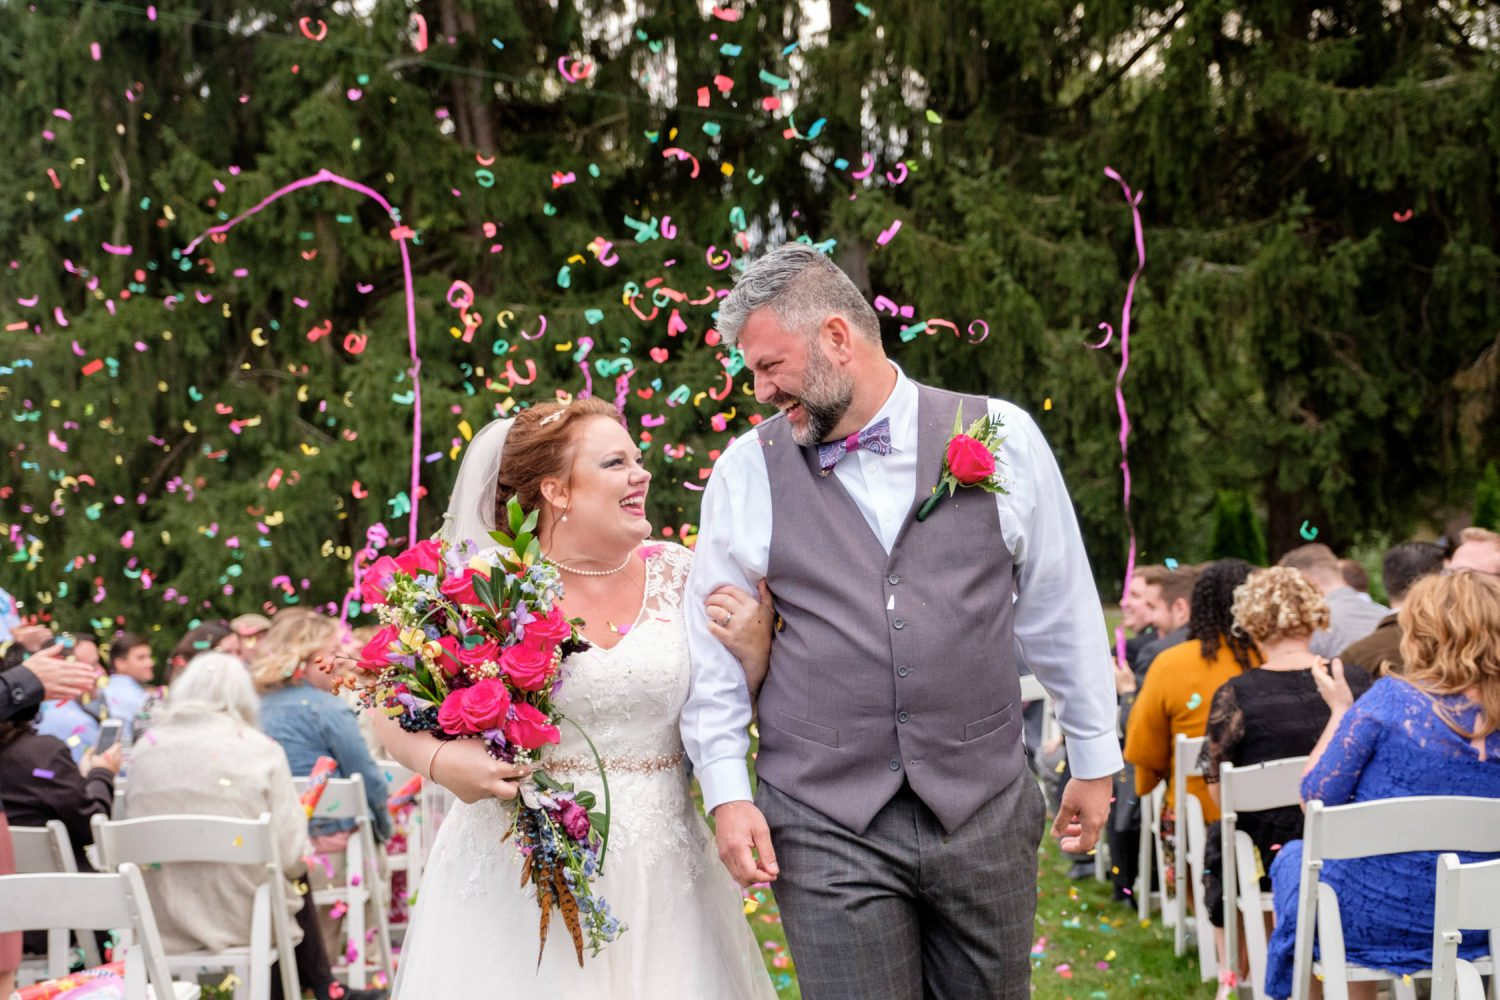 Bride and groom walk down the aisle with confetti in the background after farm wedding ceremony.